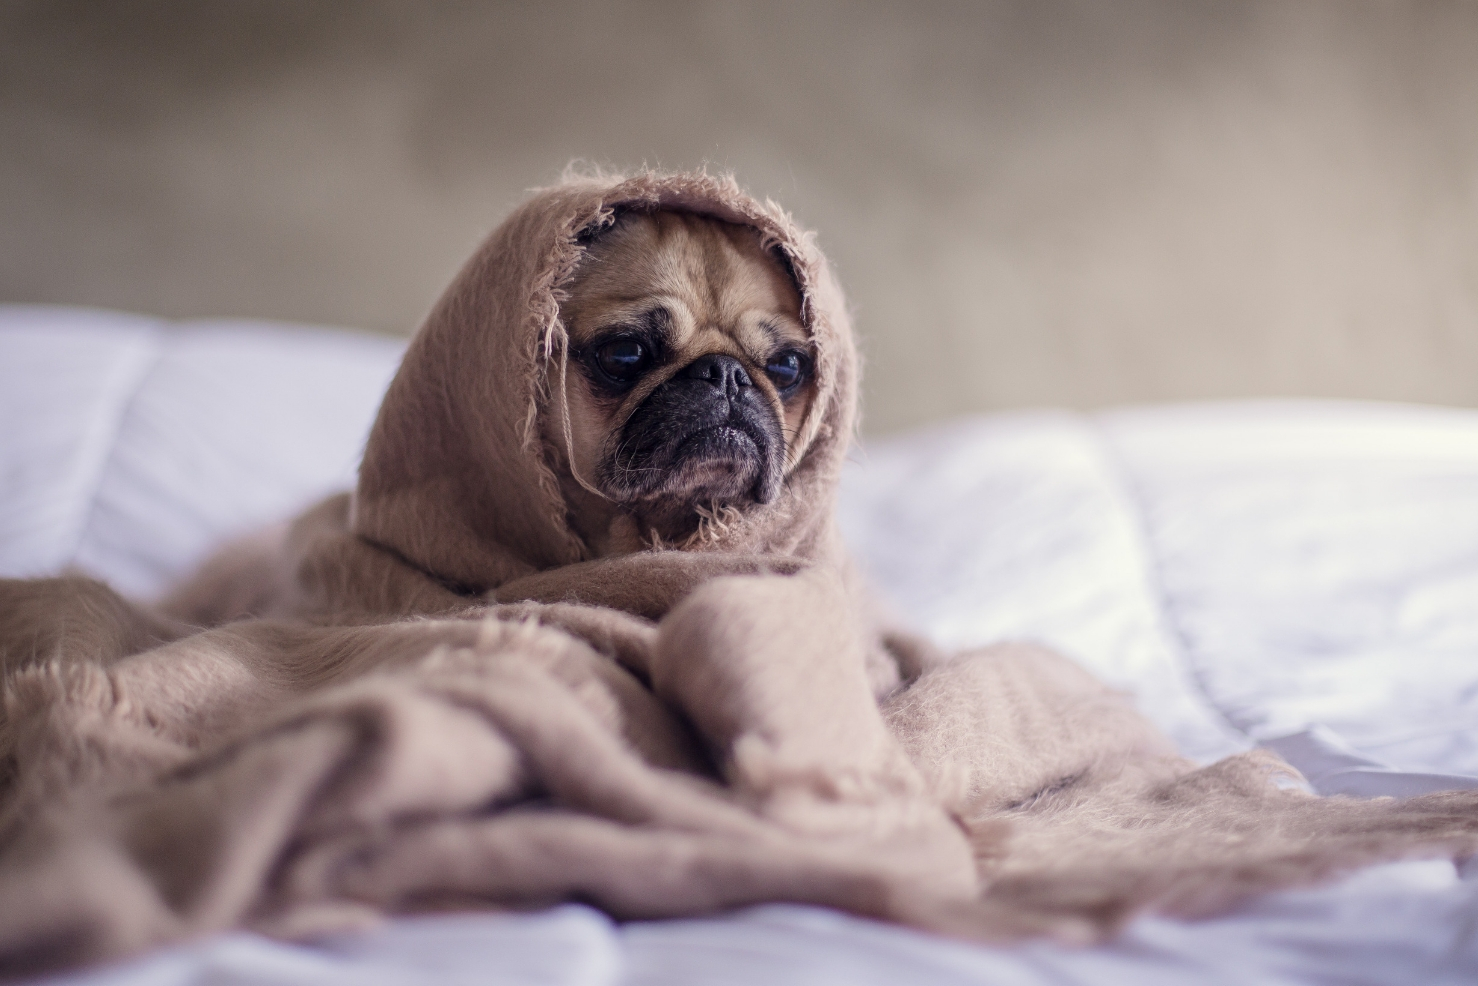 A grumpy pug dog in a blanket - keto flu assistance ideas